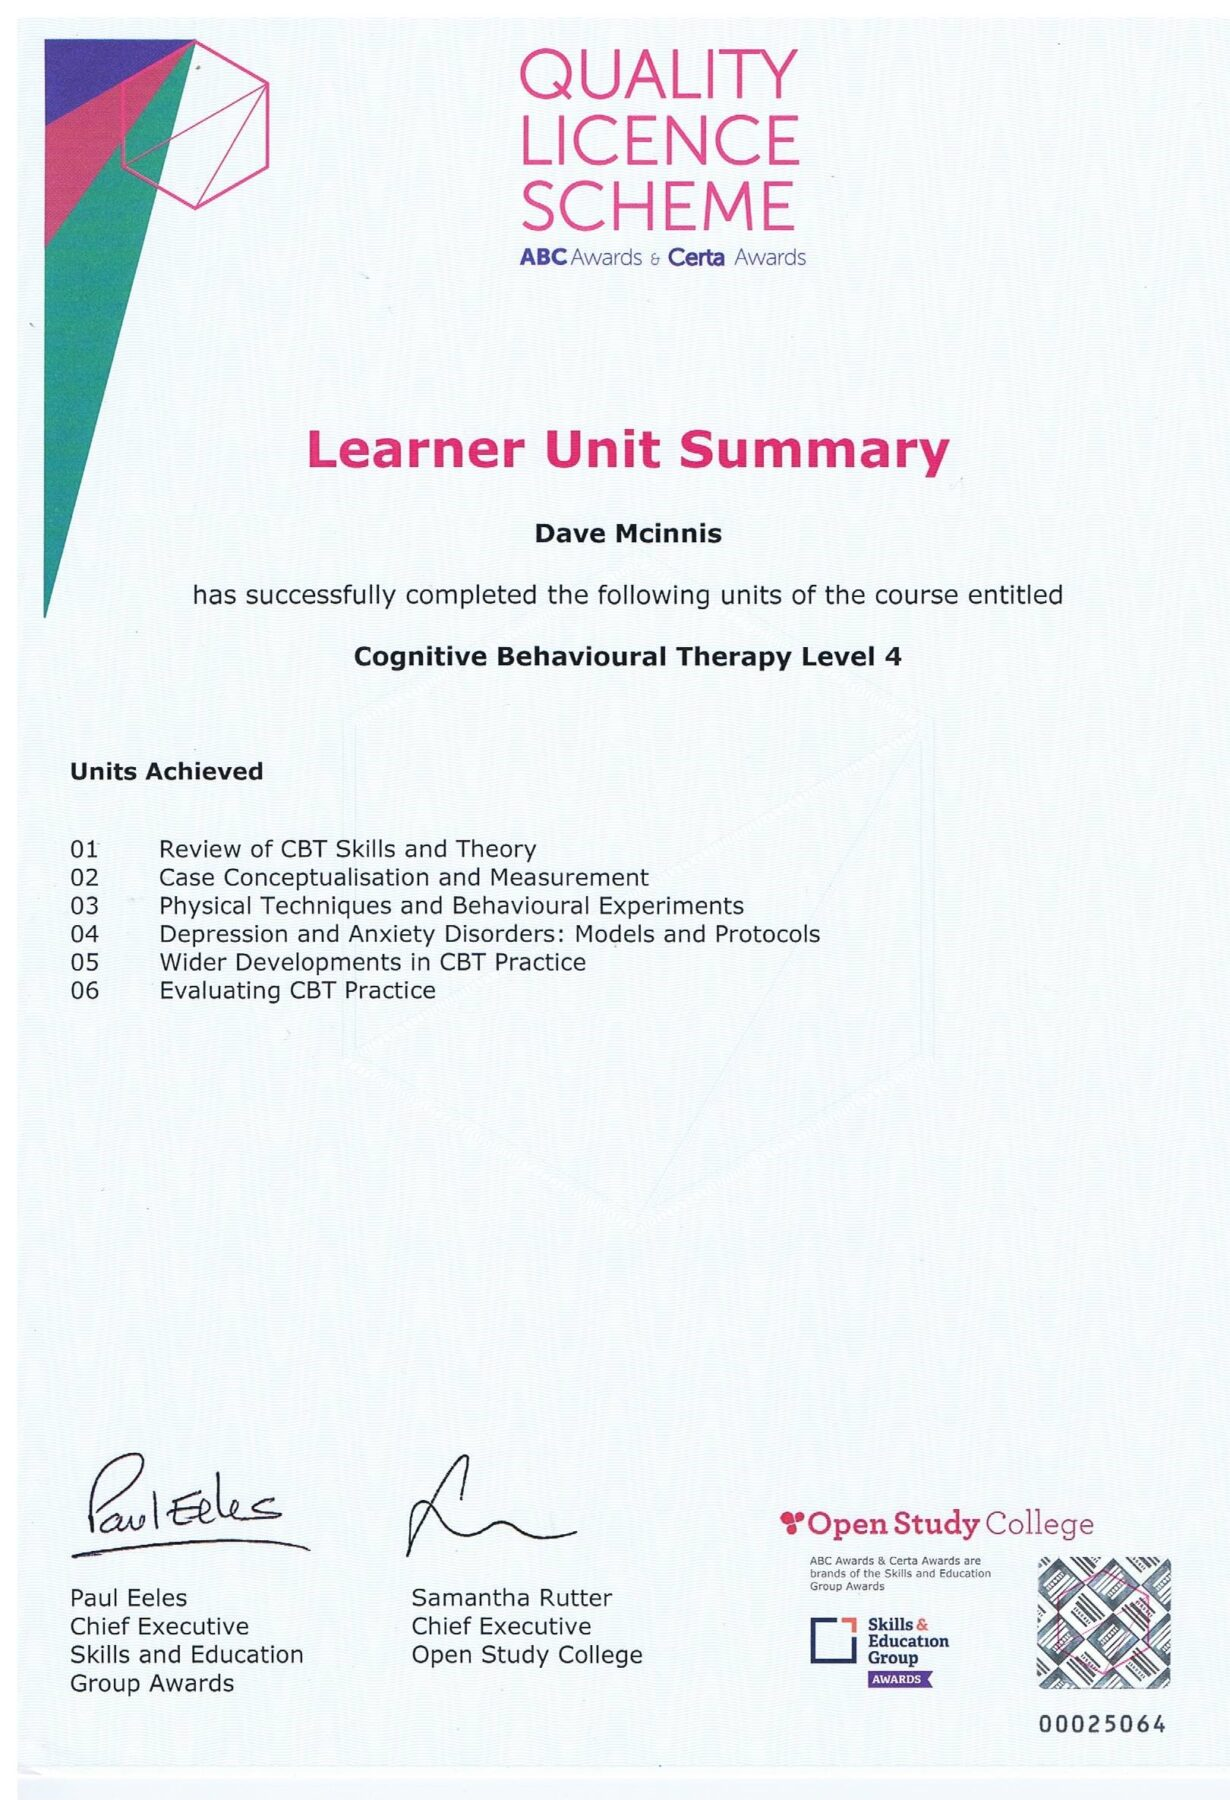 Learner Unit Summary, Cognitive Behavioural Therapy Level 4